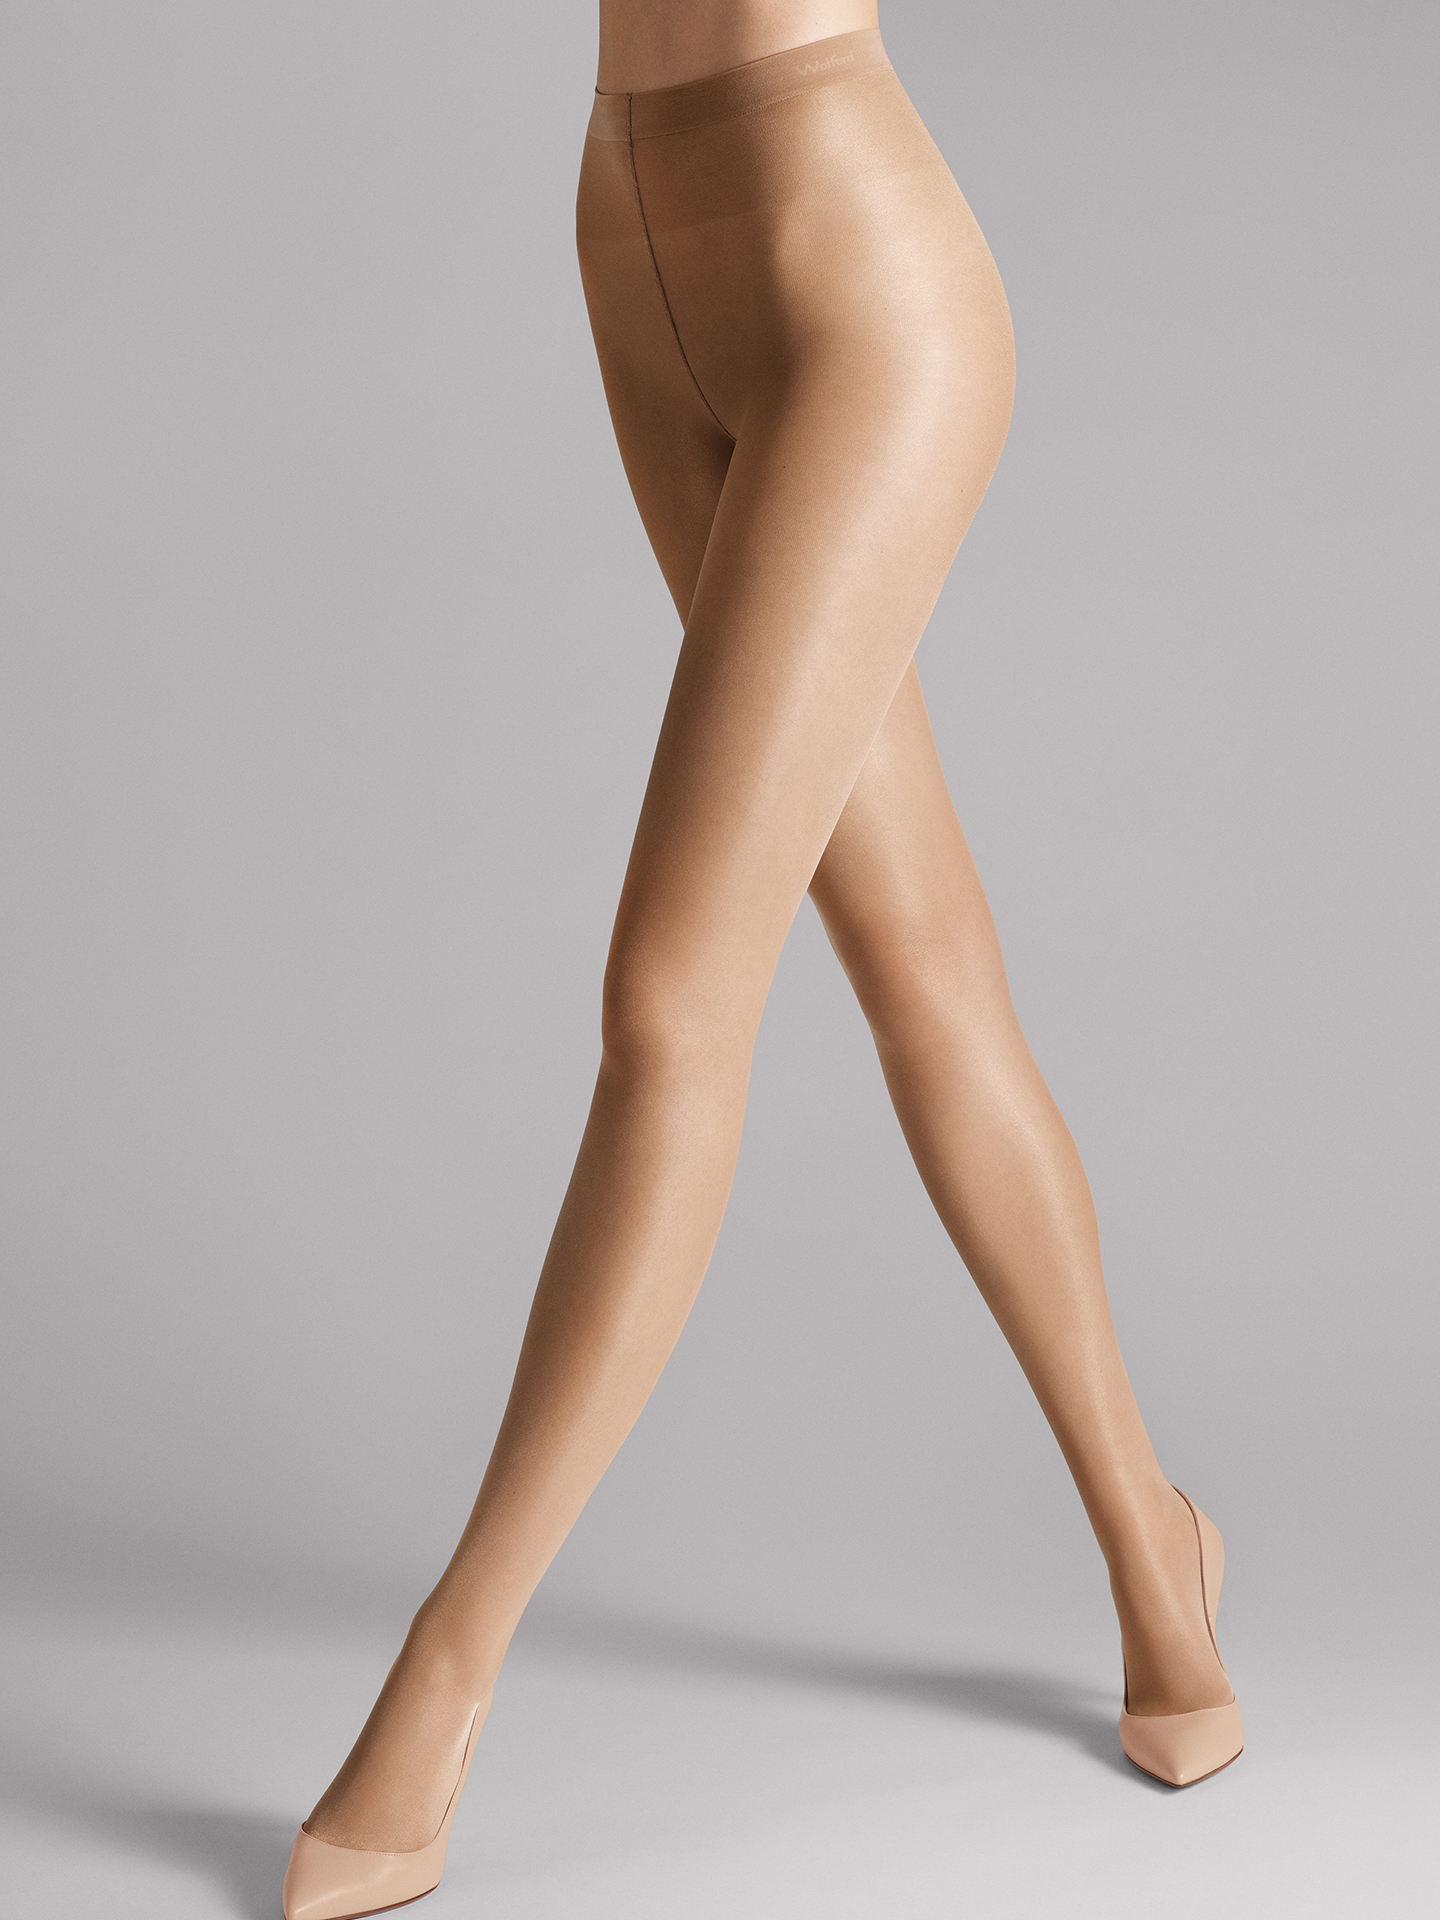 Wolford Apparel & Accessories > Clothing > Collant Satin Touch 20 - 4467 - XL